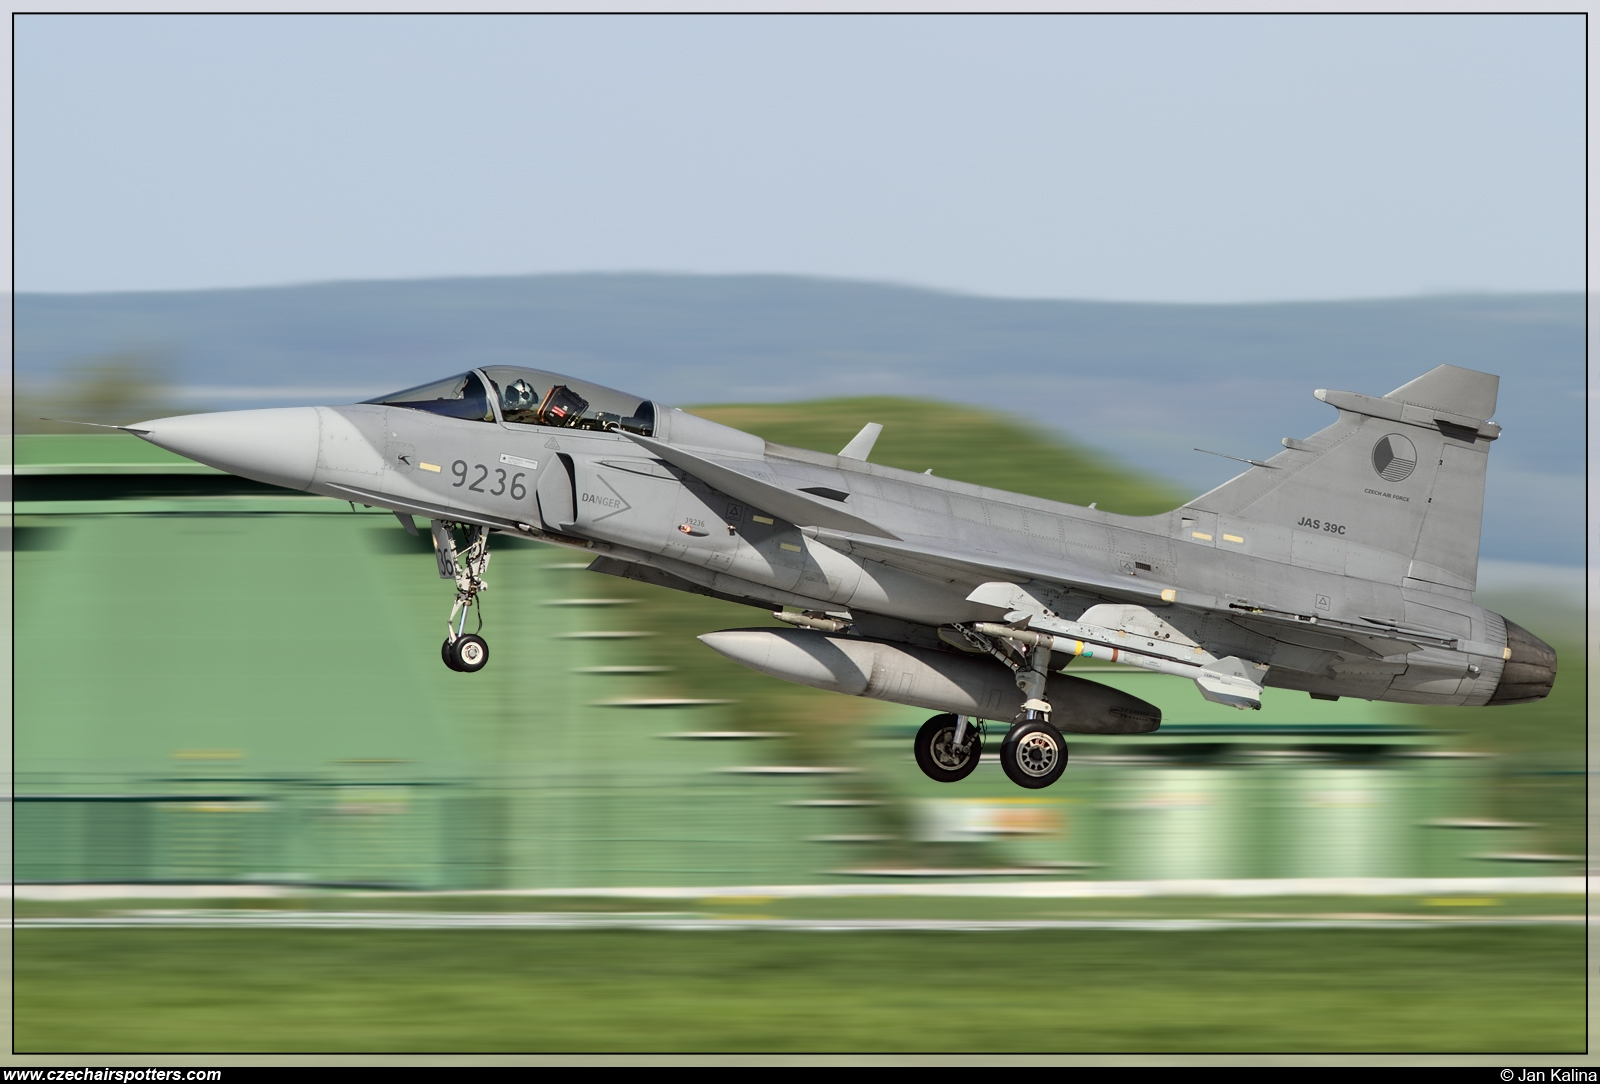 Czech - Air Force – Saab JAS39C Gripen 9236